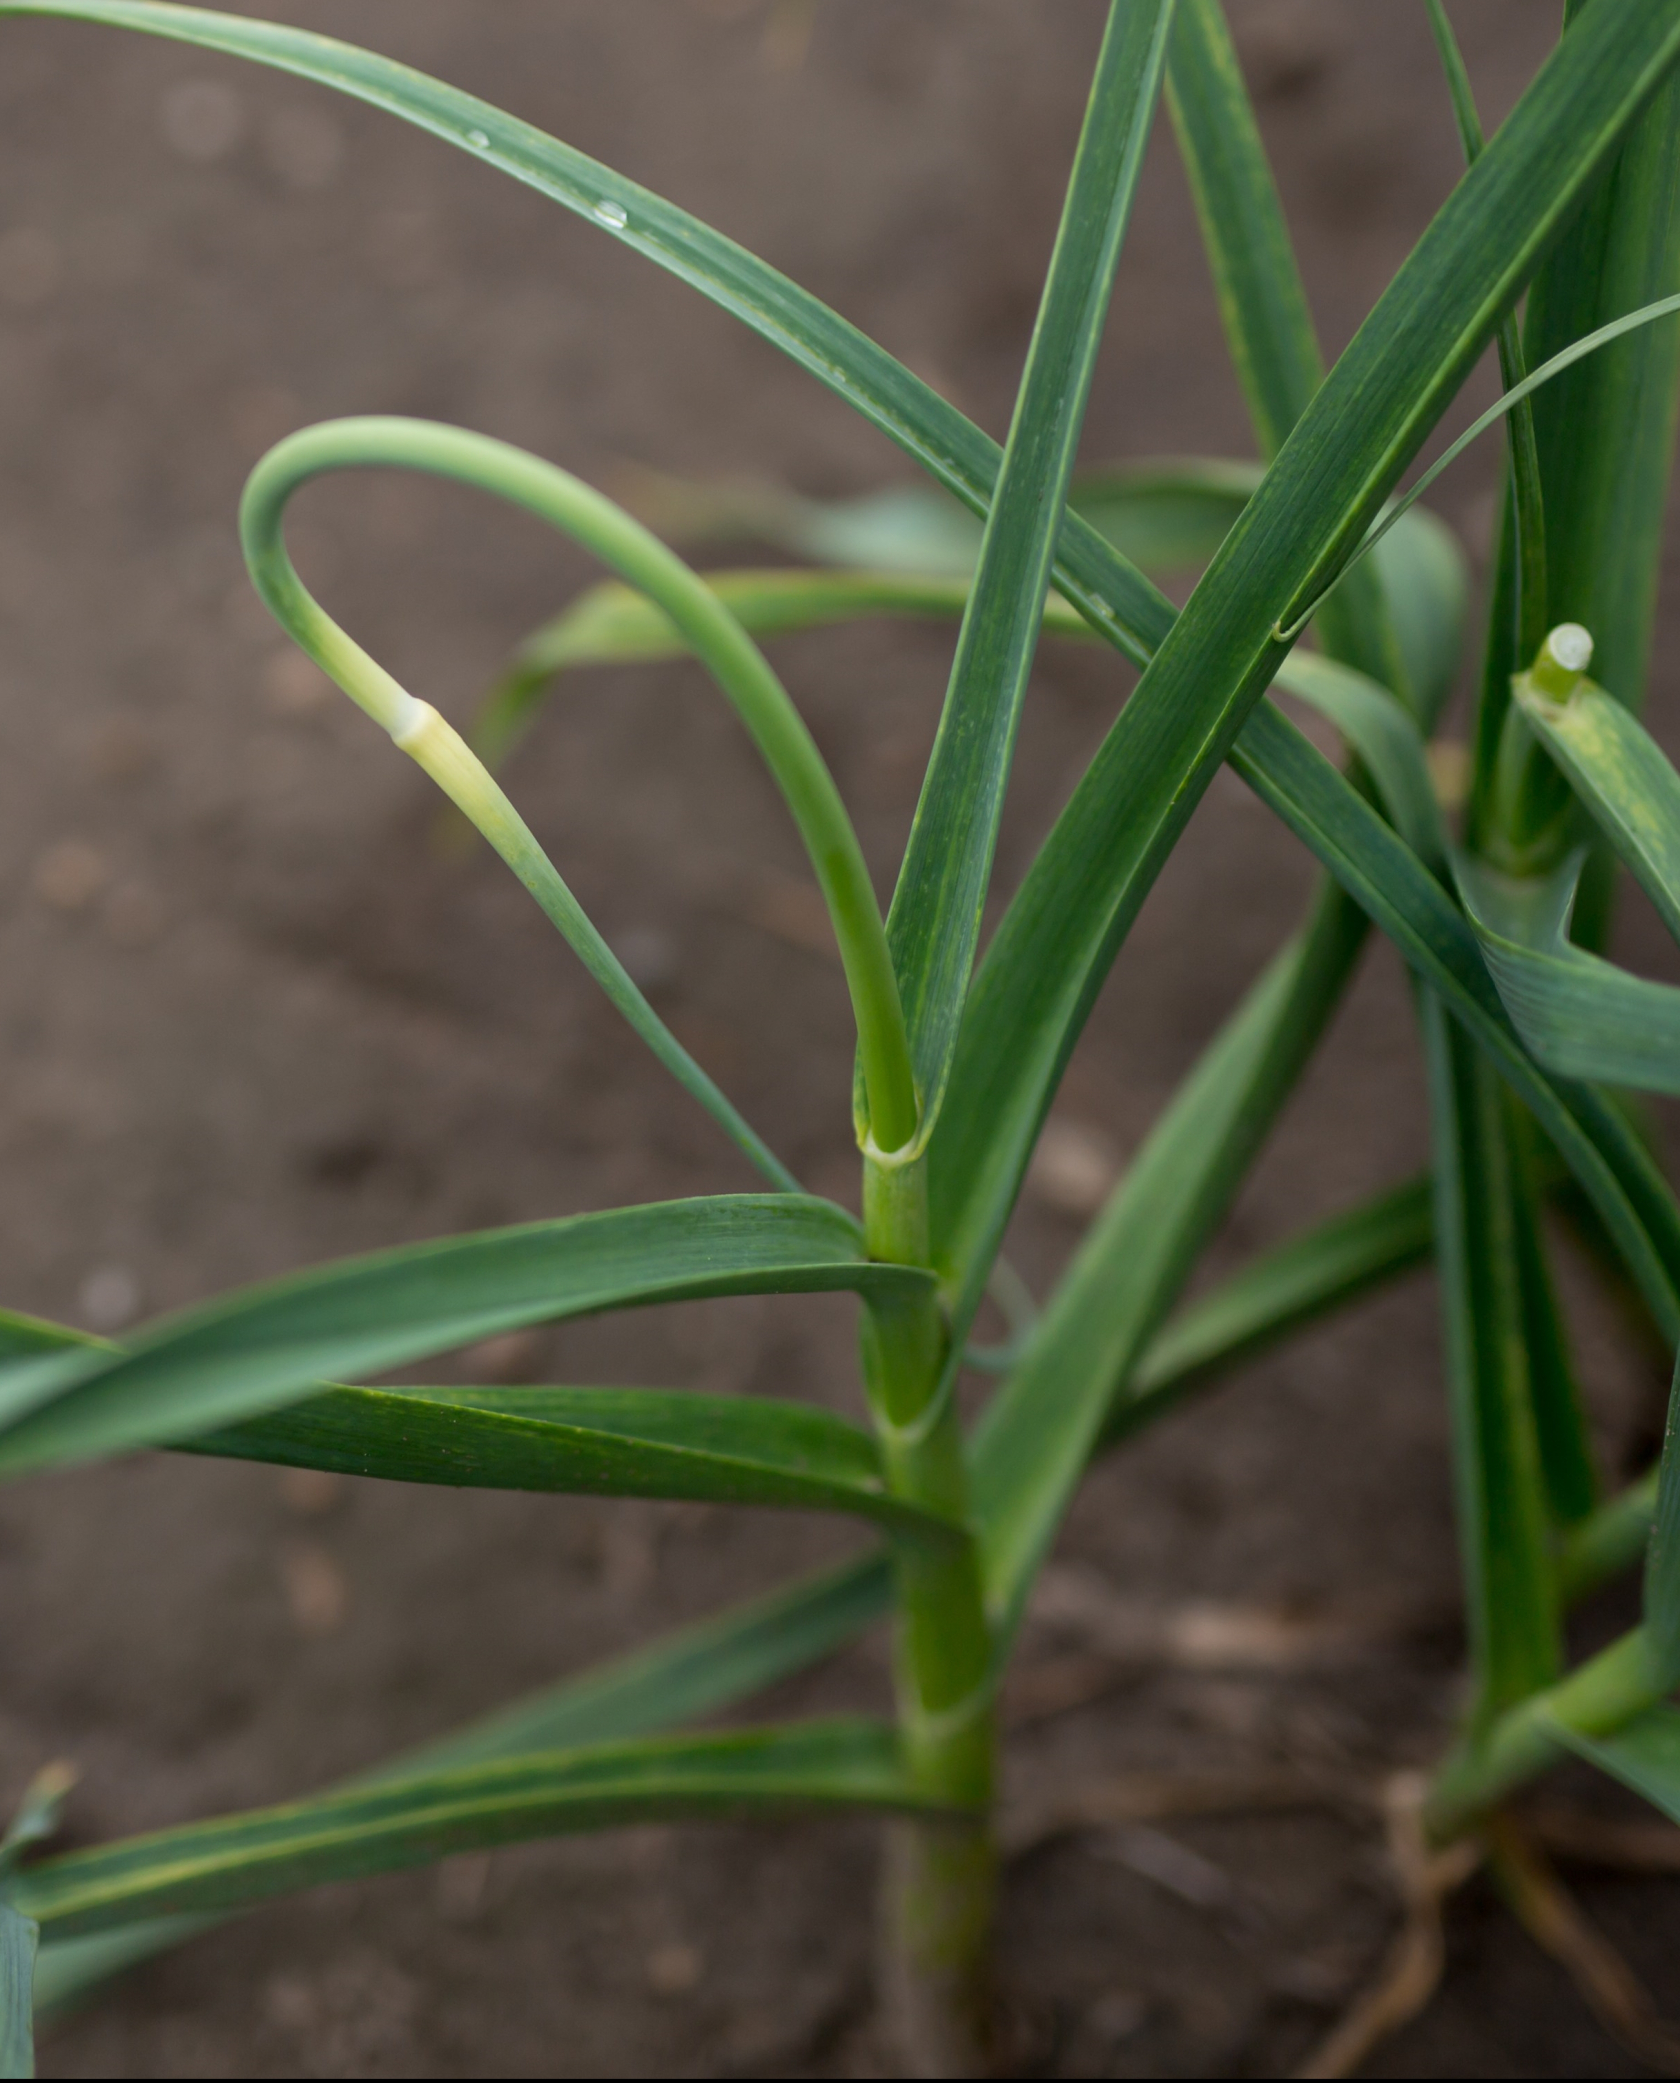 Garlic Scapes are the flower buds of the garlic plant, cut off to encourage bulb growth.